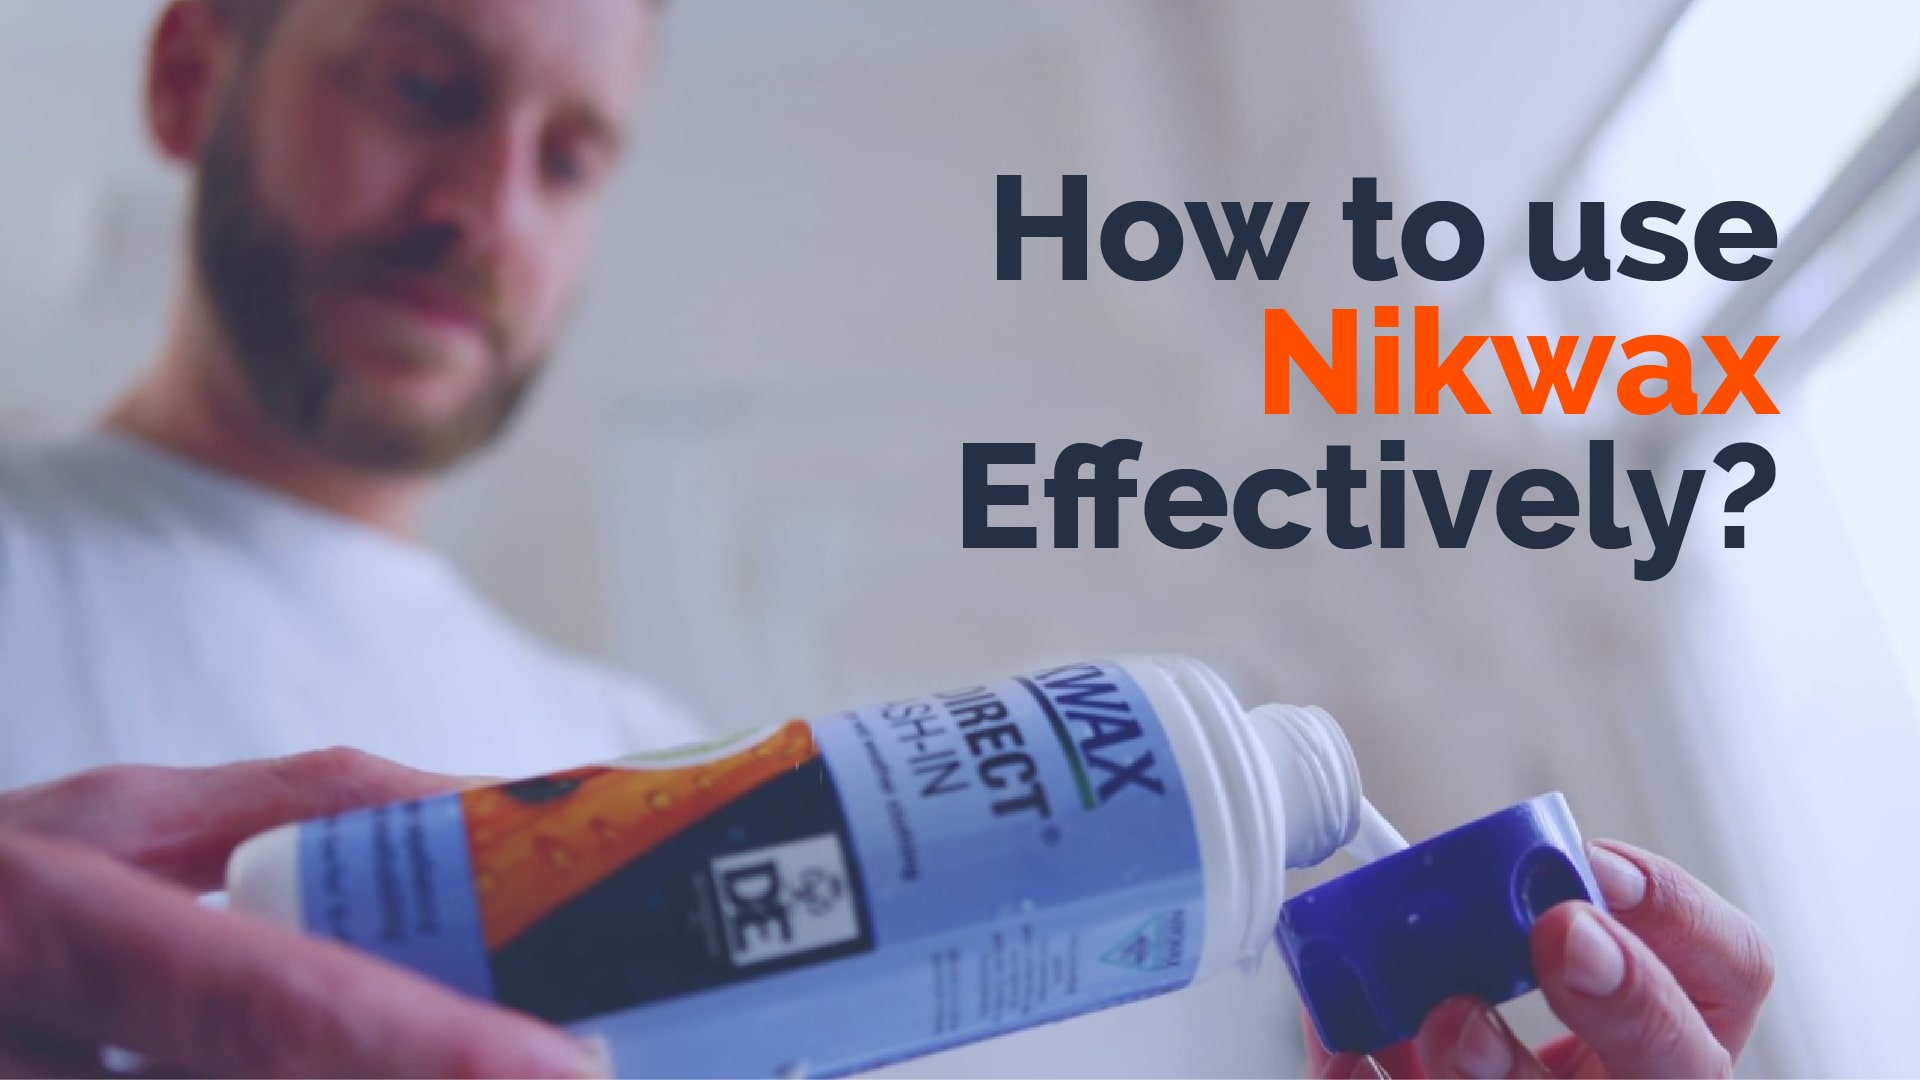 How to use Nikwax Effectively